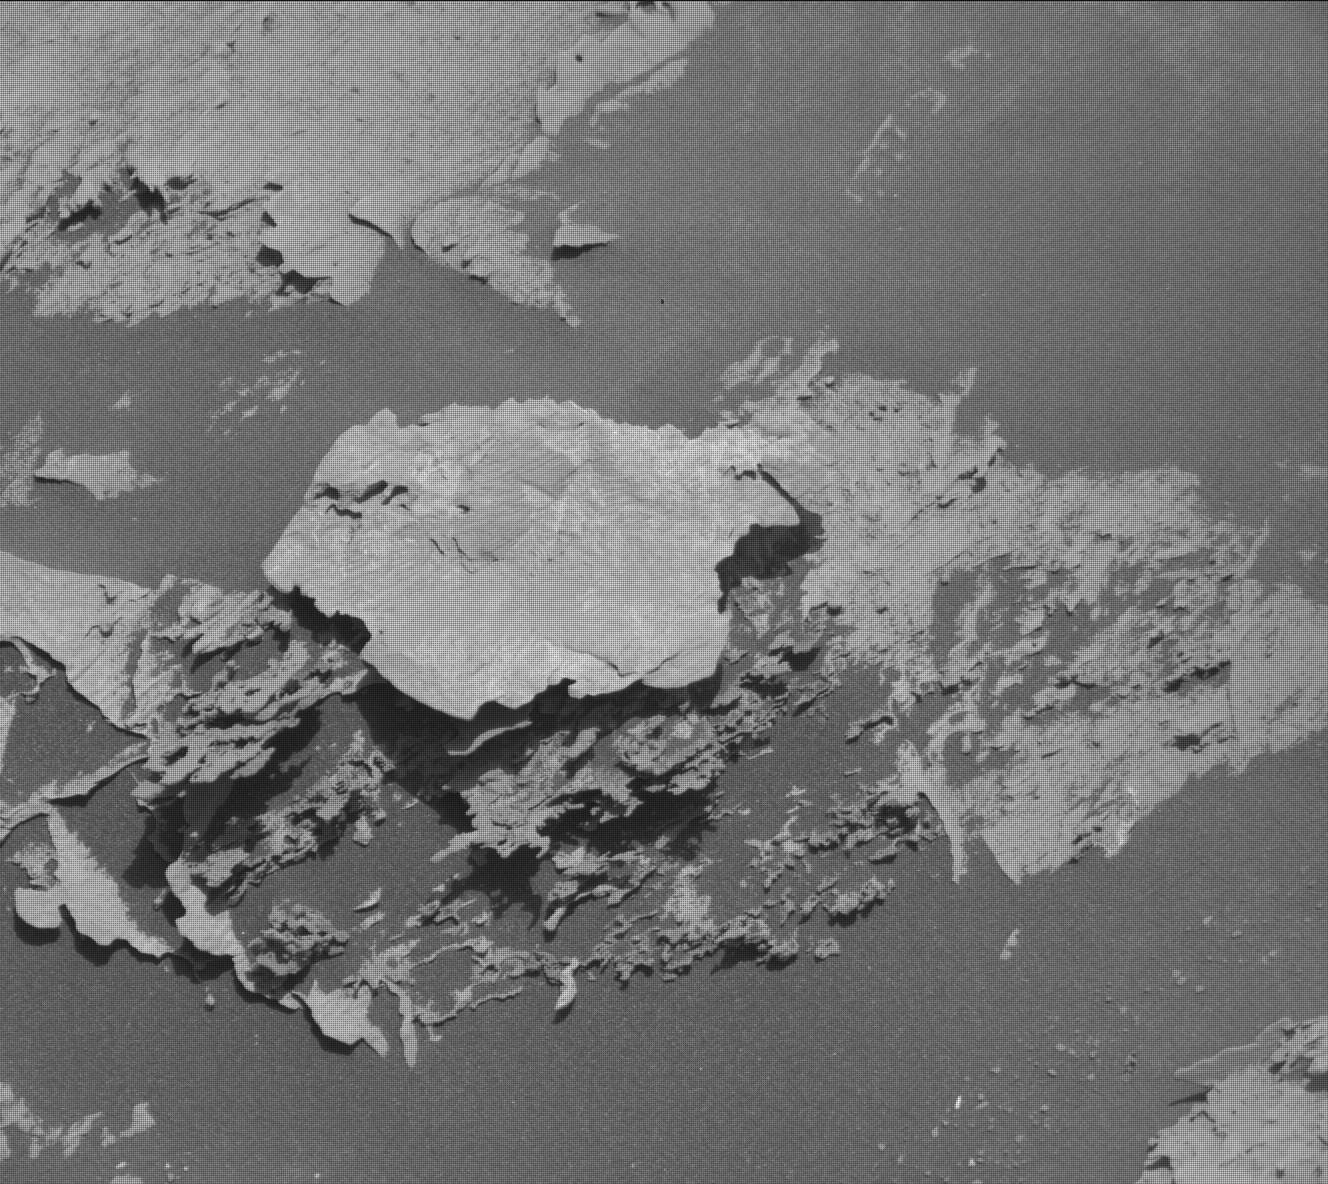 Nasa's Mars rover Curiosity acquired this image using its Mast Camera (Mastcam) on Sol 3085